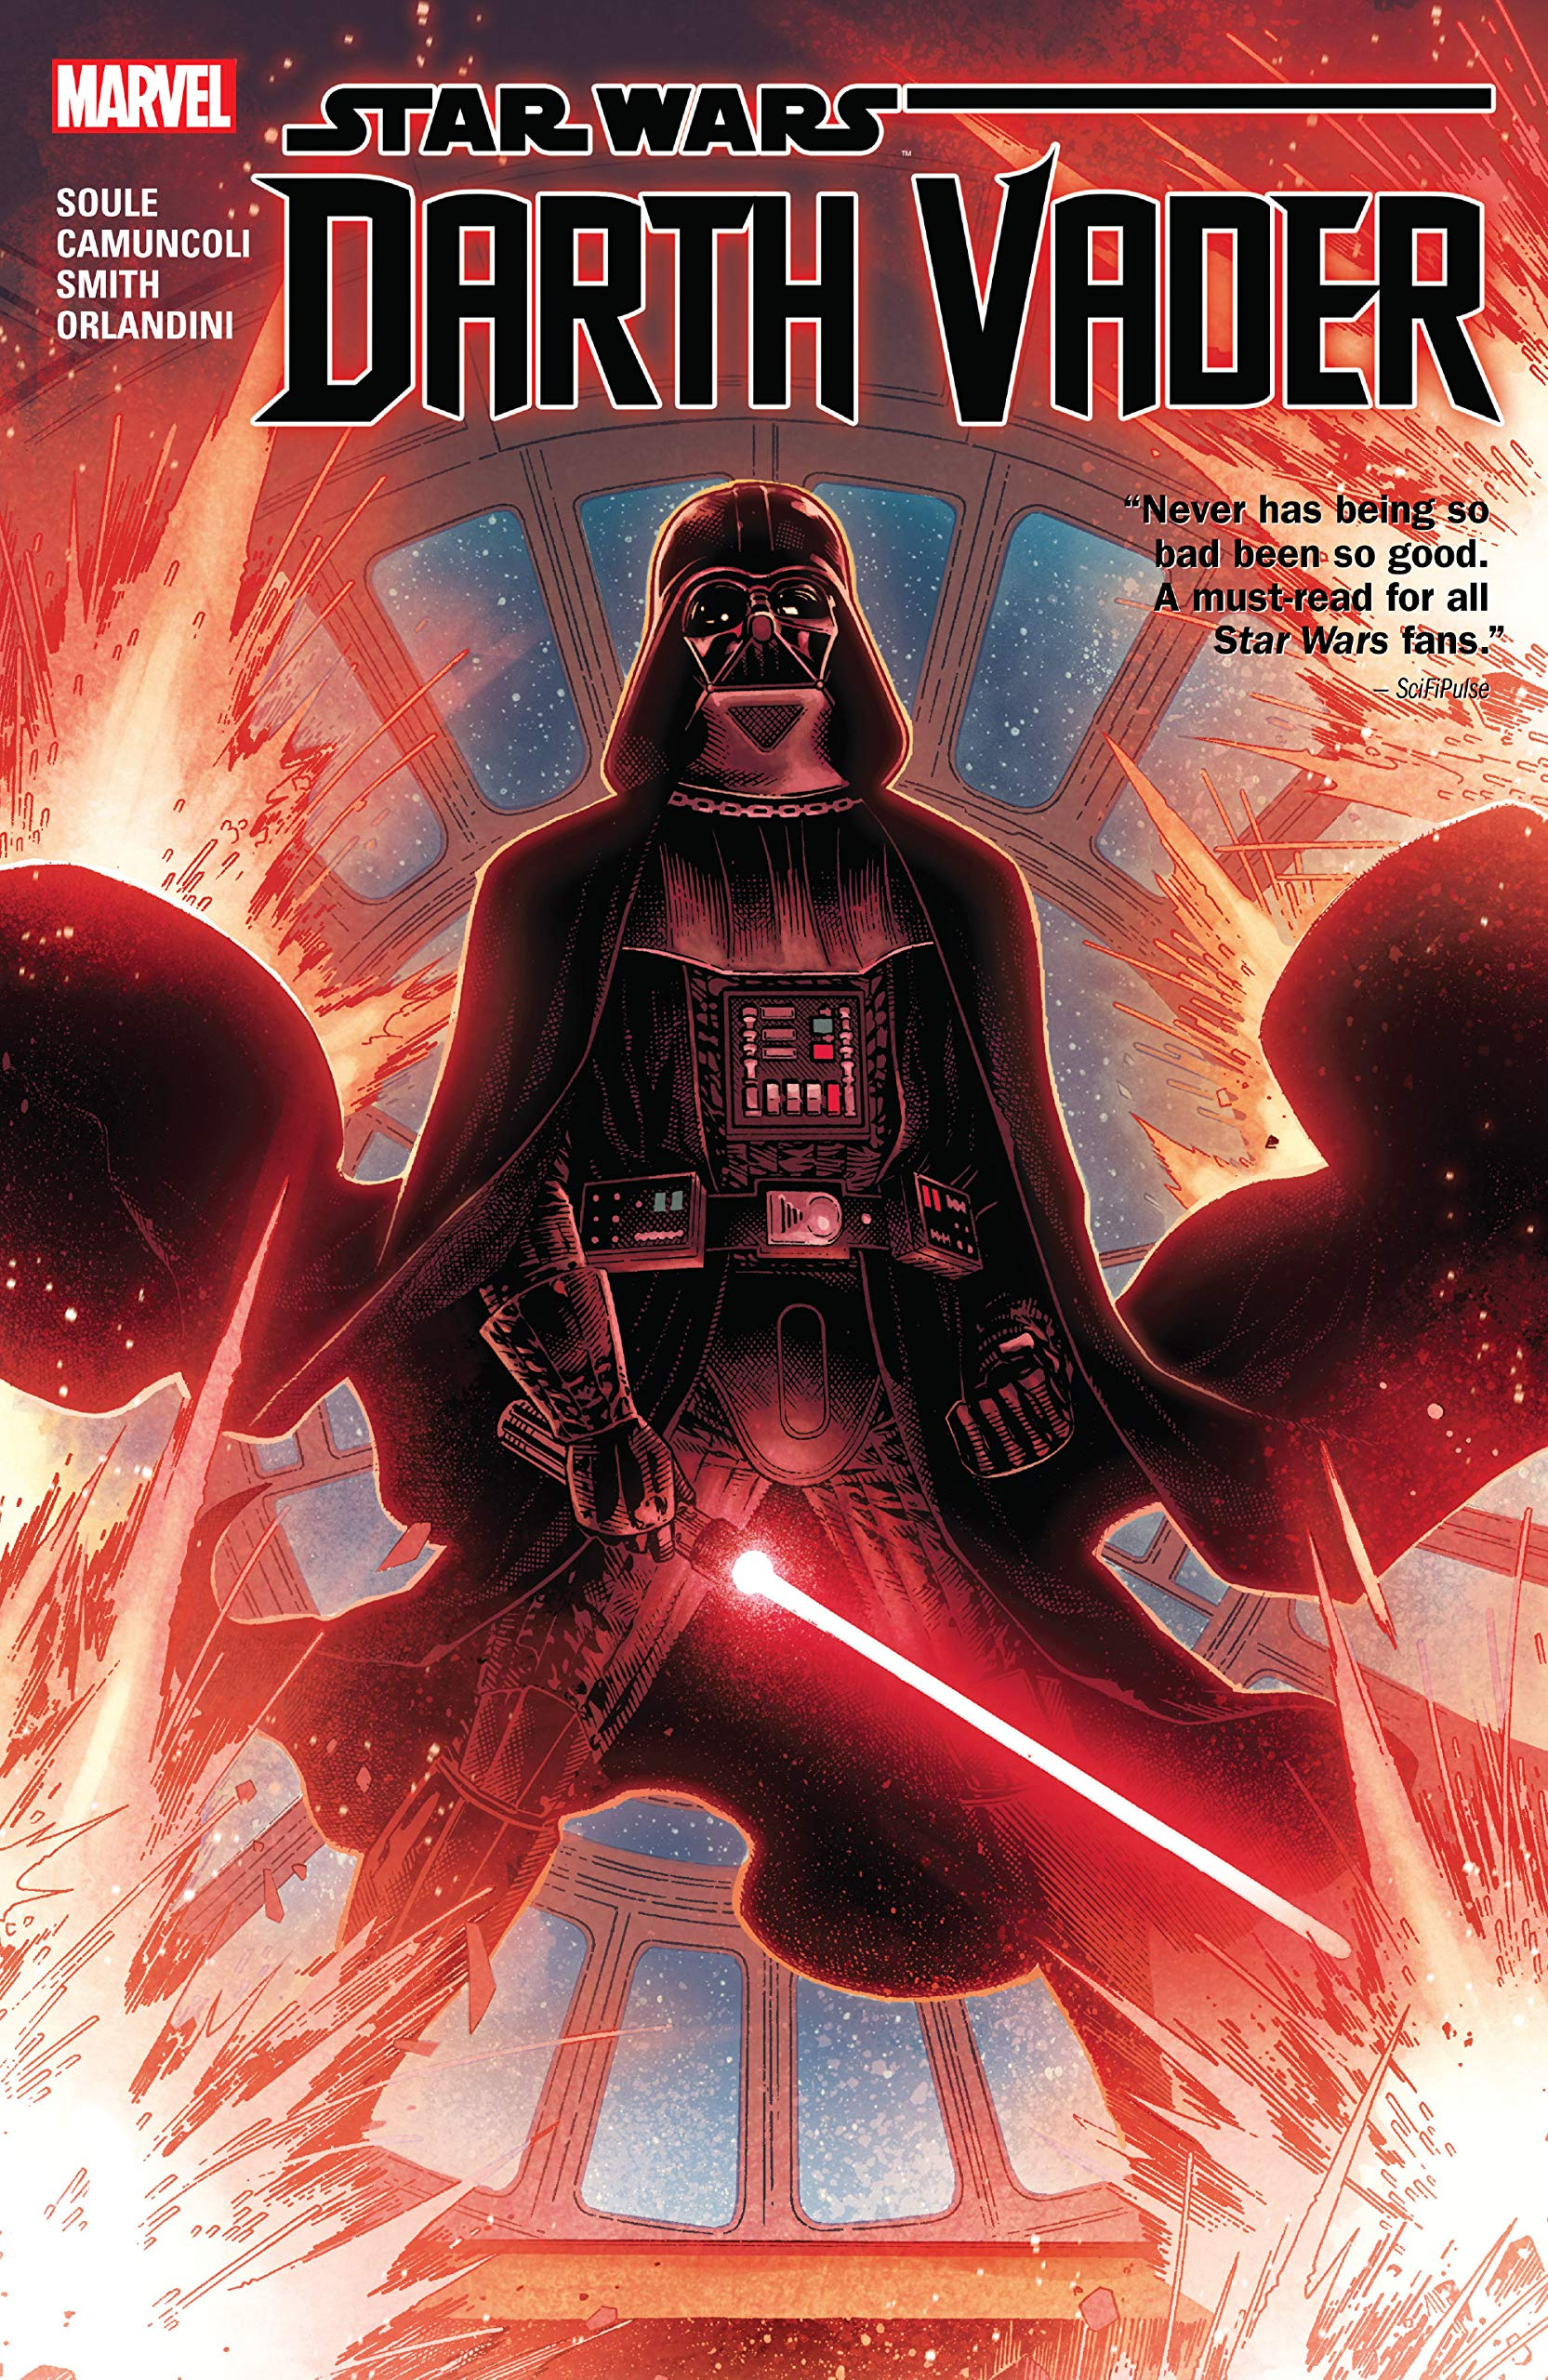 Star Wars: Darth Vader - Dark Lord Of The Sith Vol. 1 Collection (Darth Vader (2017-2018)) por Charles Soule